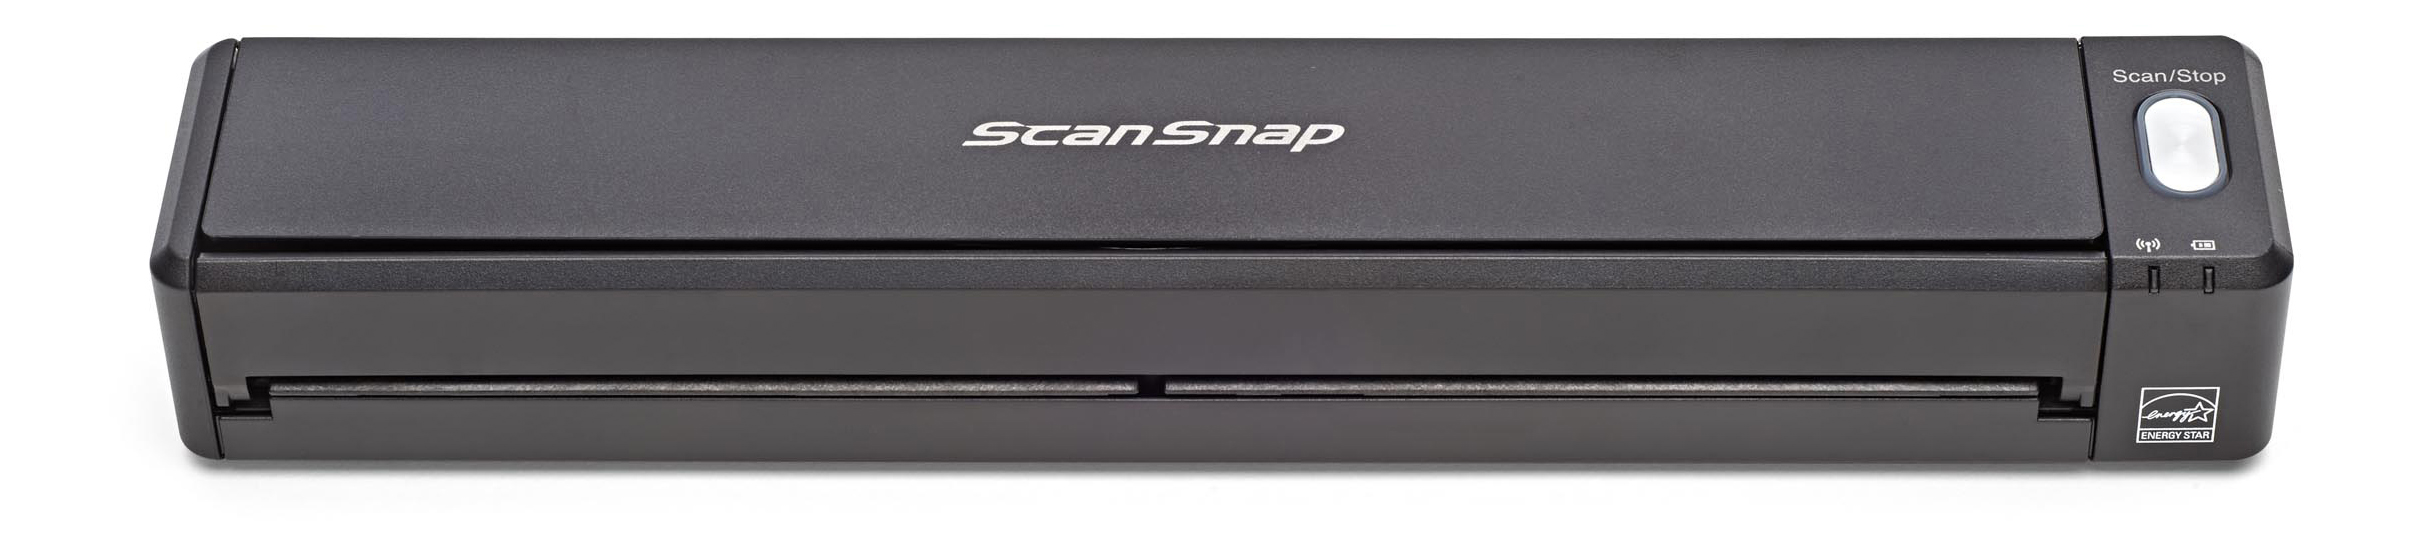 Fujitsu ScanSnap iX100 Wireless Color Sheetfed Scanner